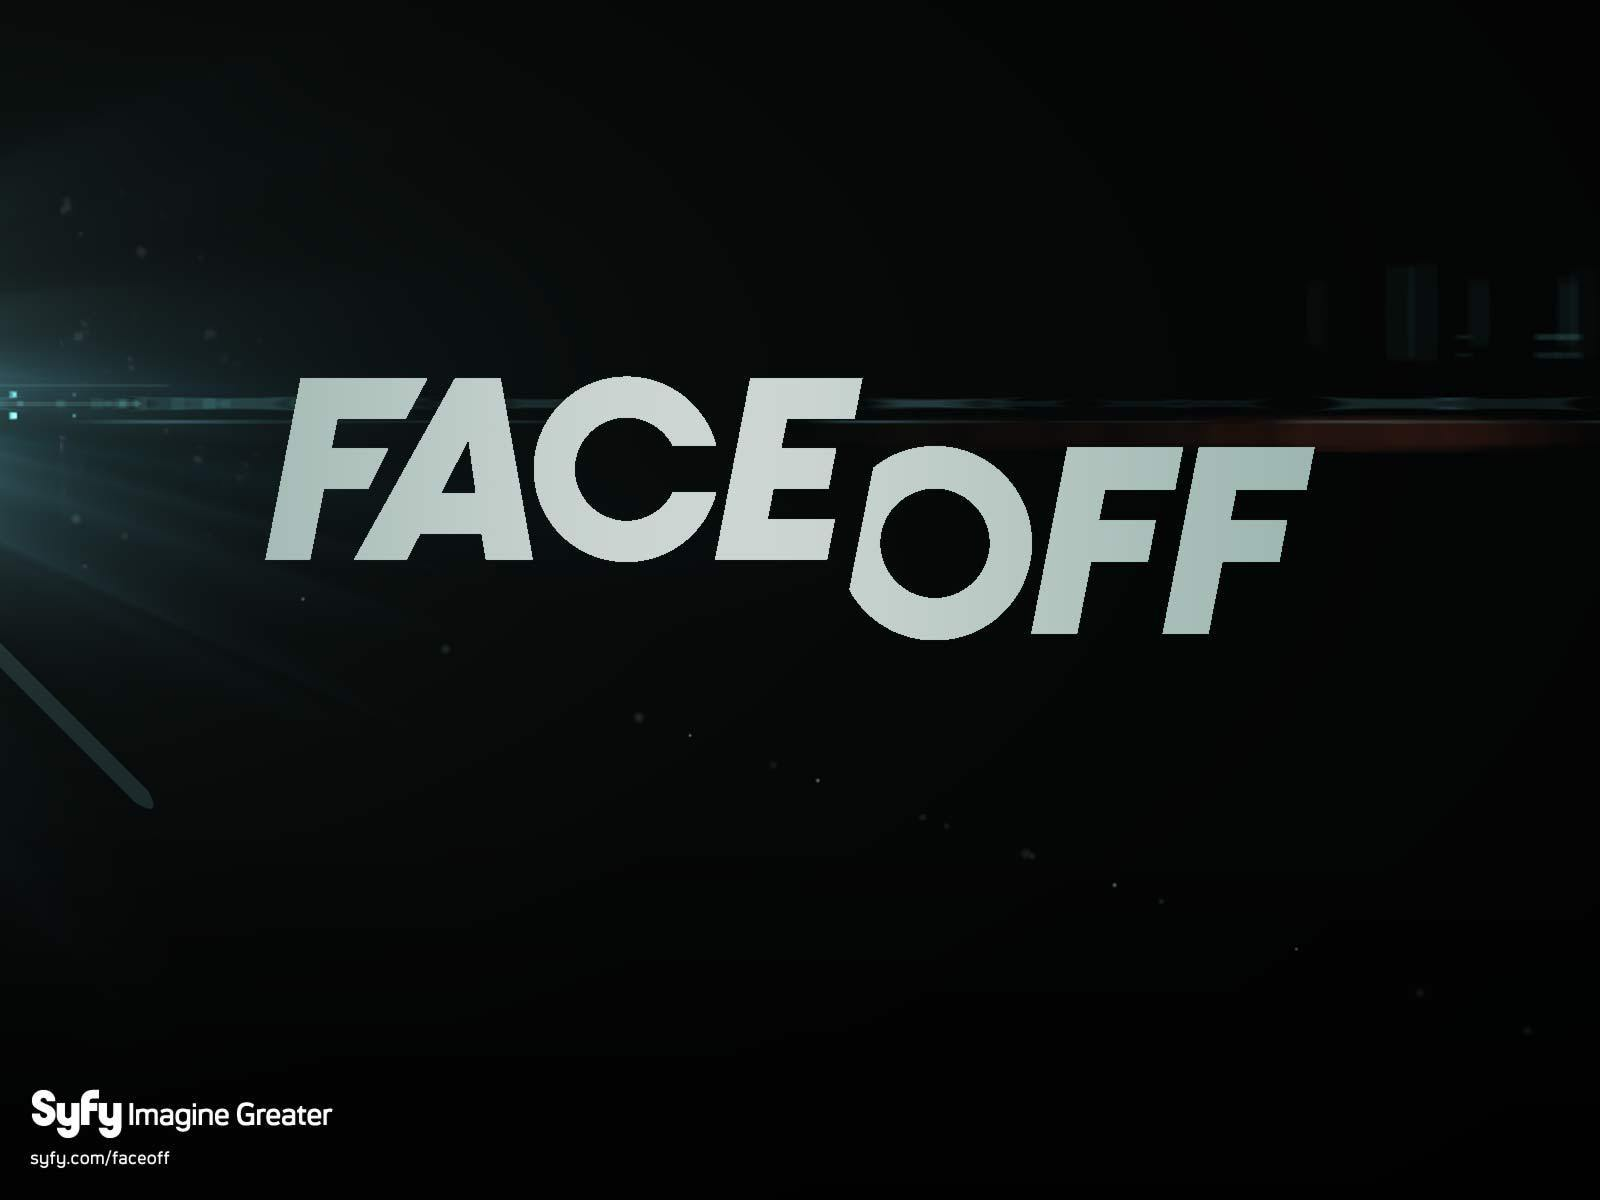 face off syfy show images face off hd wallpaper and